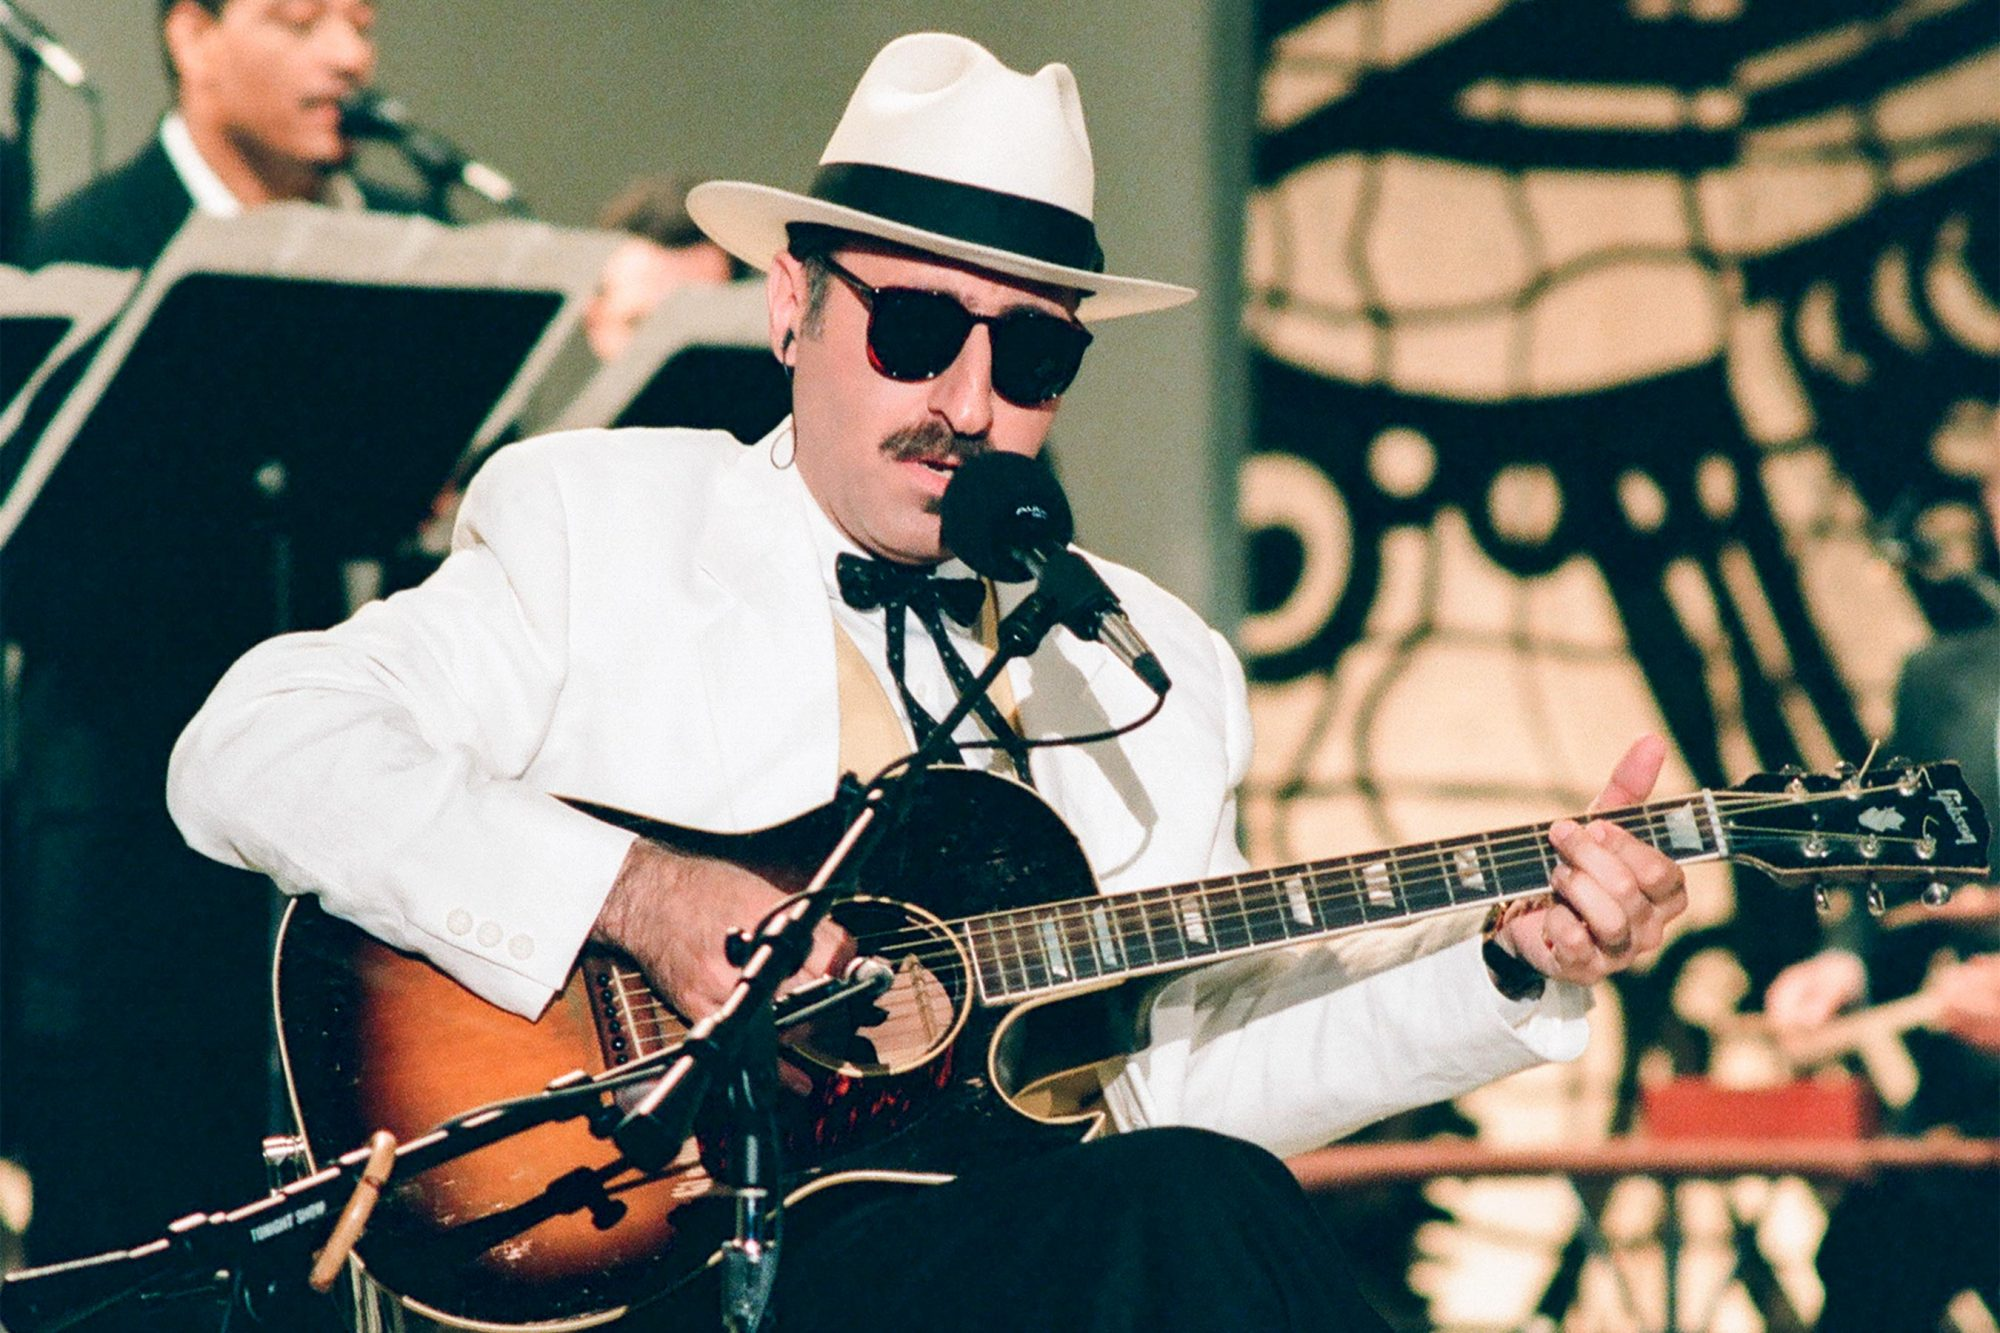 THE TONIGHT SHOW WITH JAY LENO -- Episode 518 -- Pictured: Musical guest Leon Redbone performs on August 12, 1994-- (Photo by: Margaret Norton/NBC/NBCU Photo Bank via Getty Images)